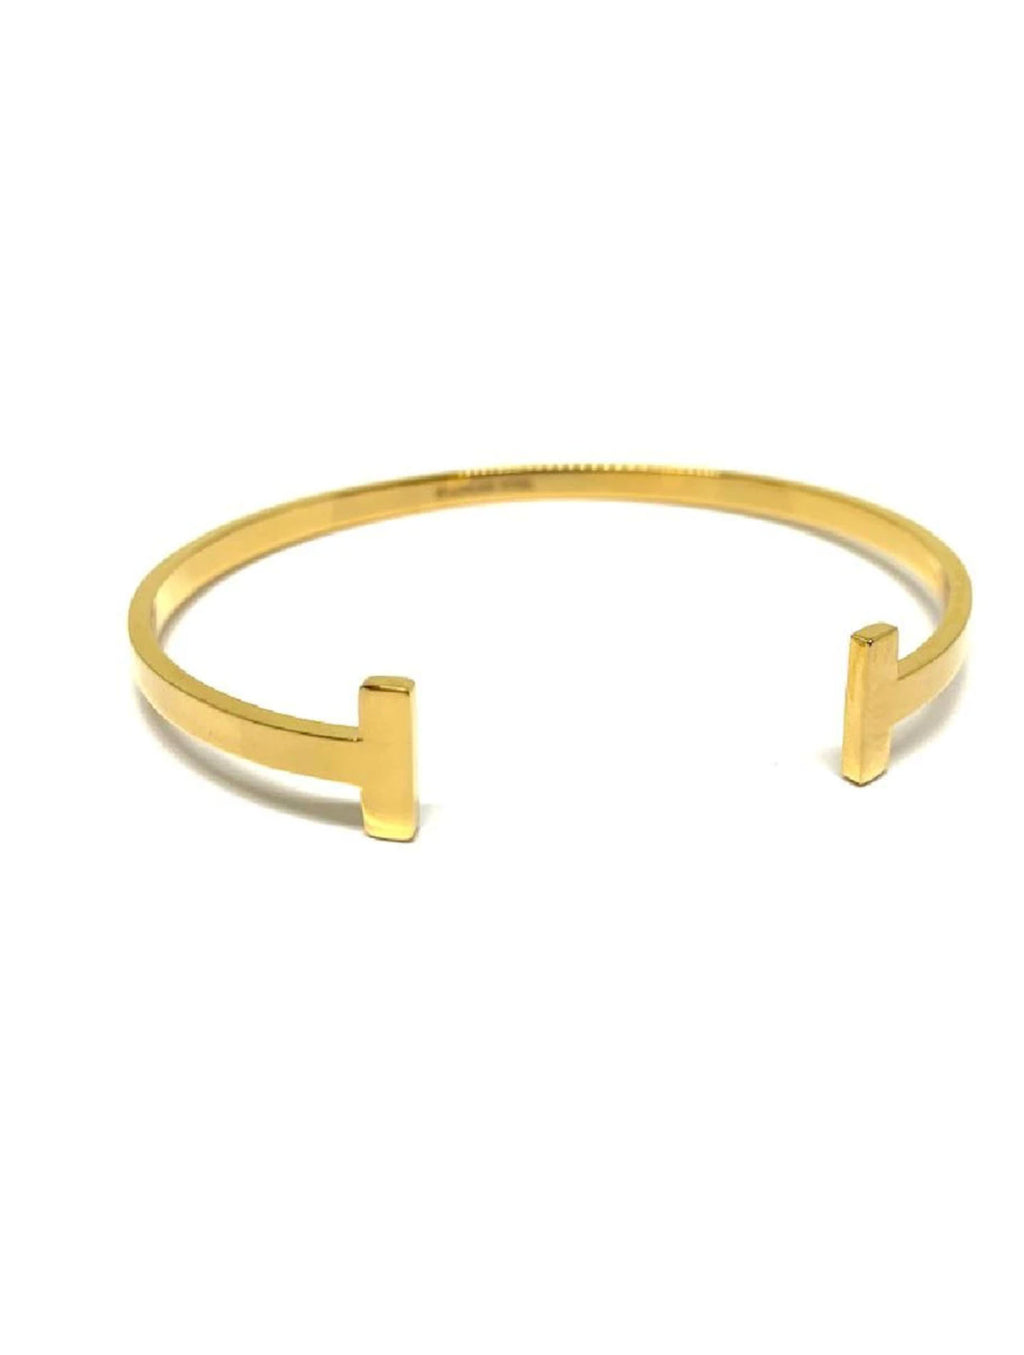 Athena Designs Open T Bangle Cuff in Gold